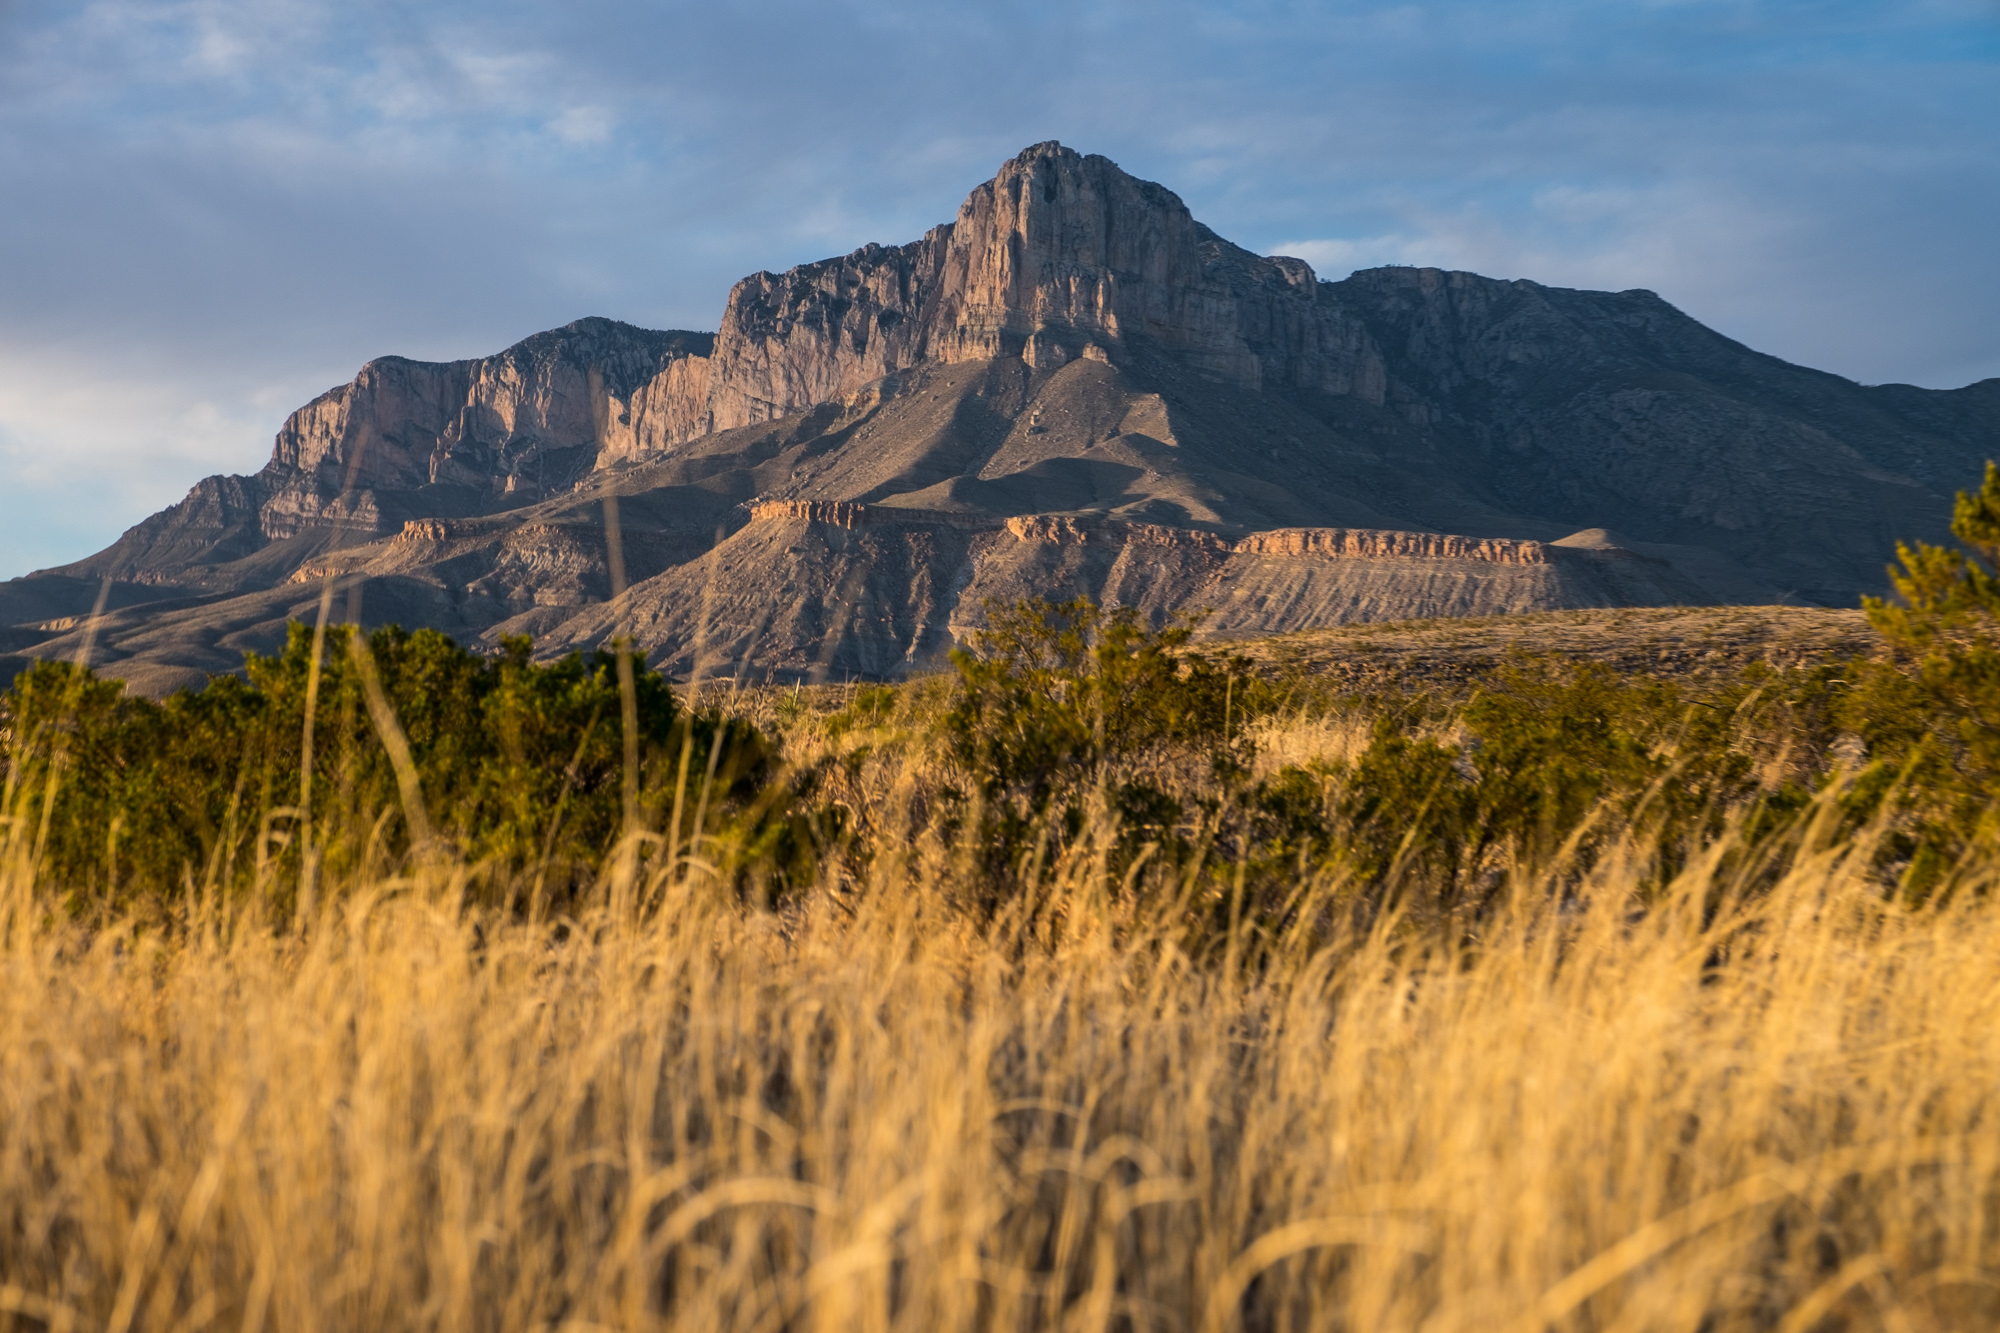 Our first look at the Guadalupe Mountains.....impressive!